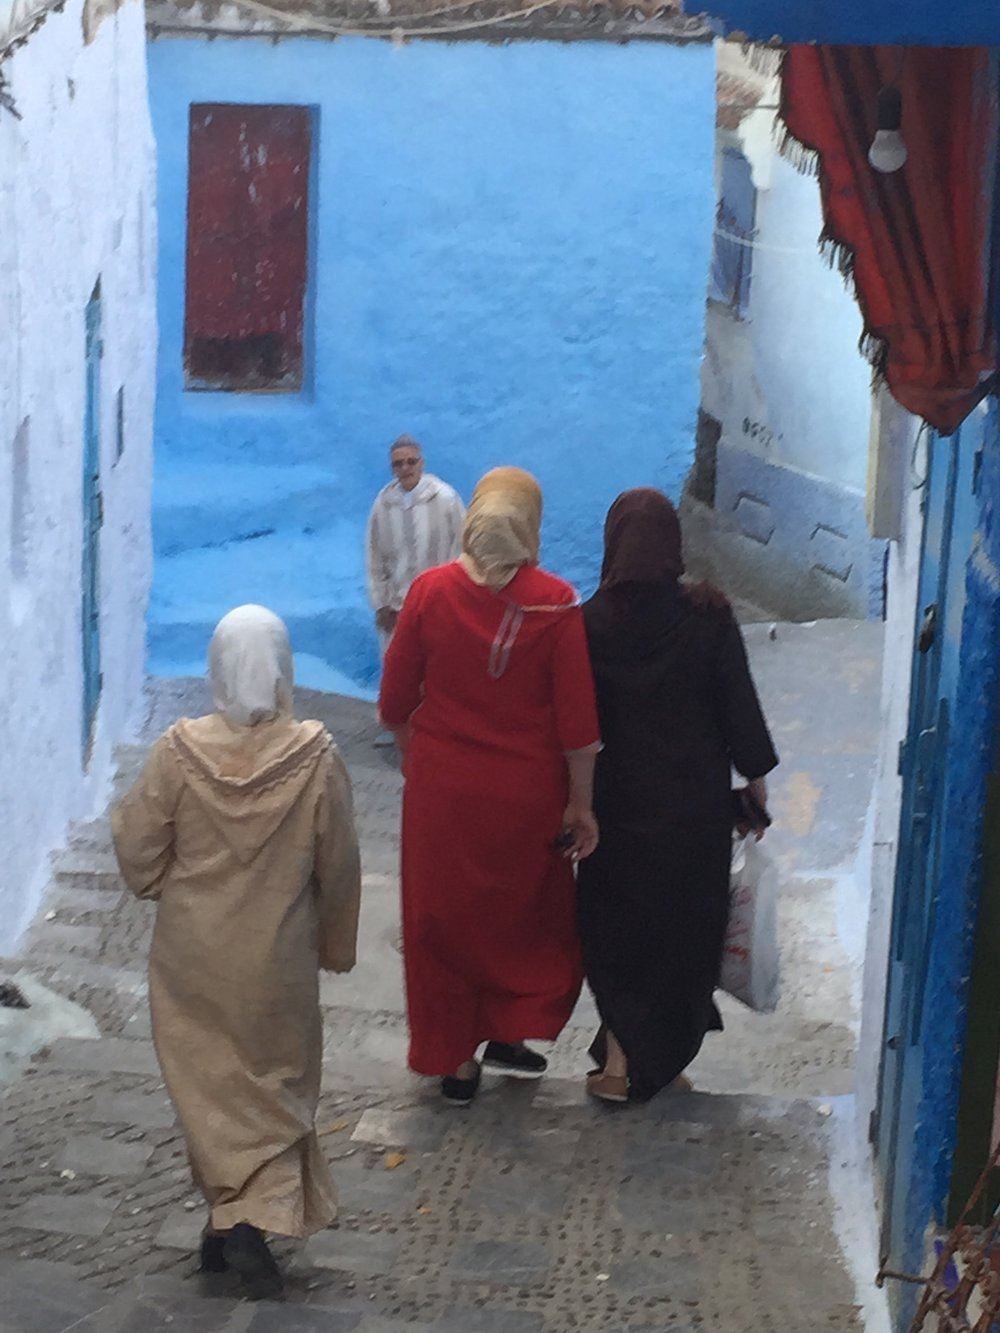 Moroccan women taking a stroll thru Chefchaouen, the Blue City